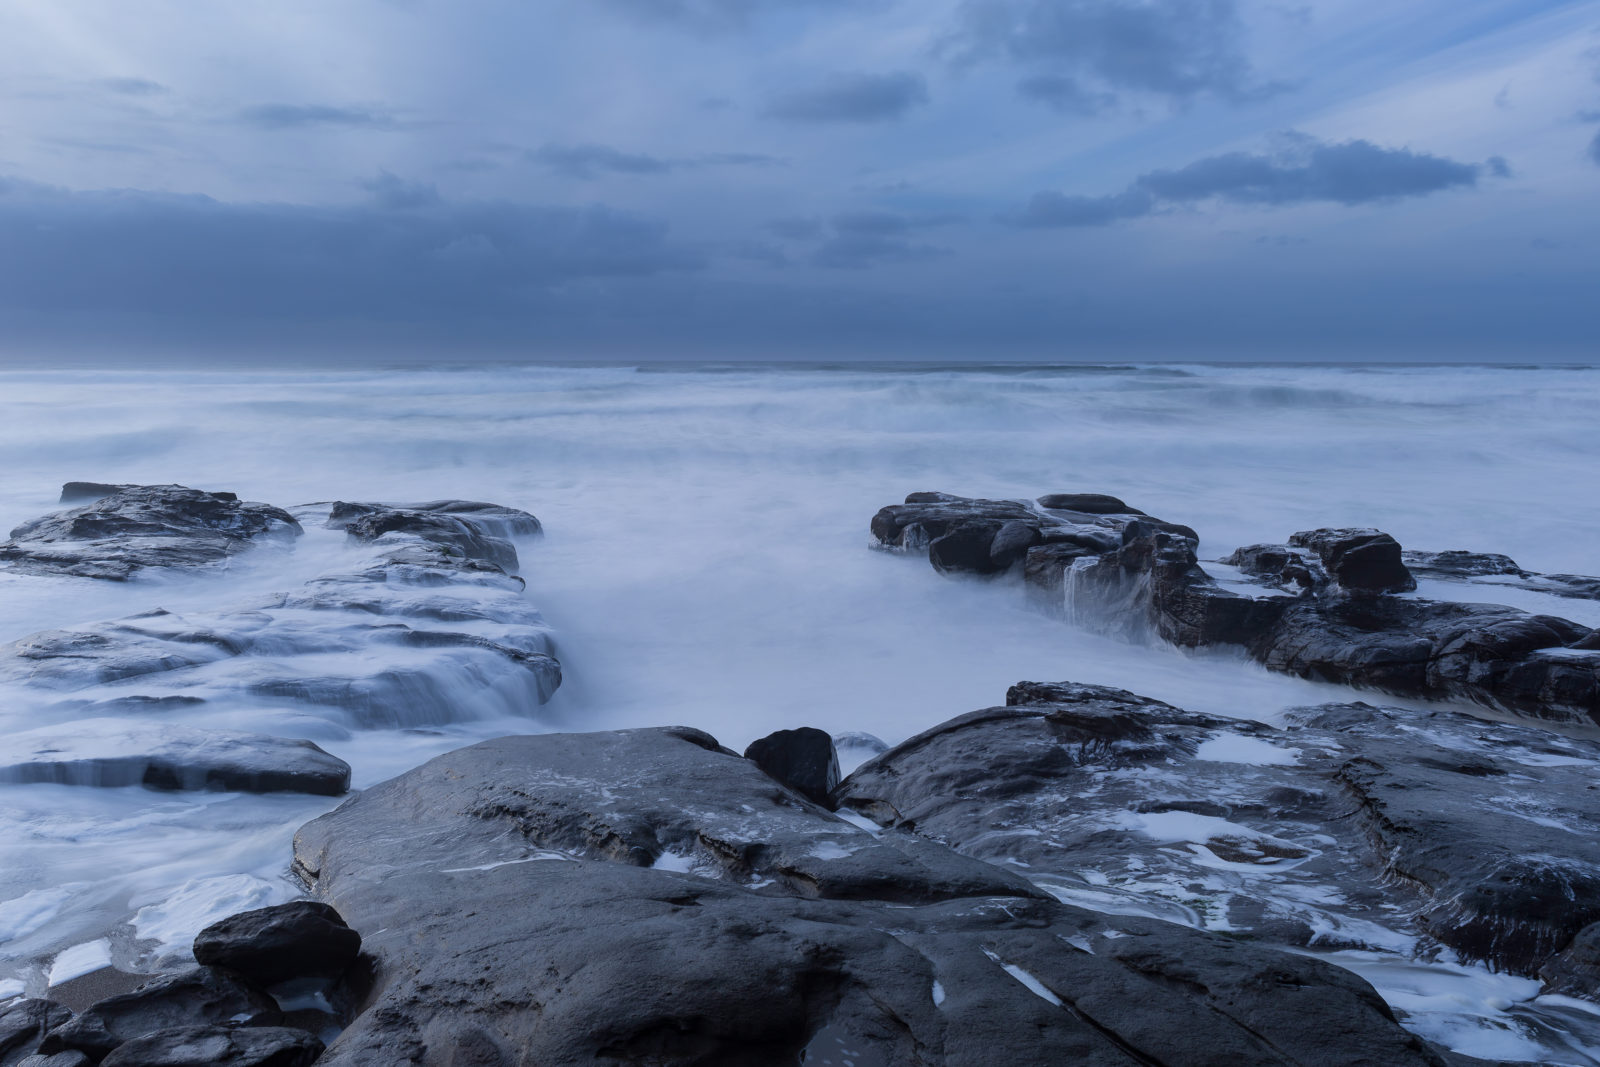 Staring at the rocks and winter ocean